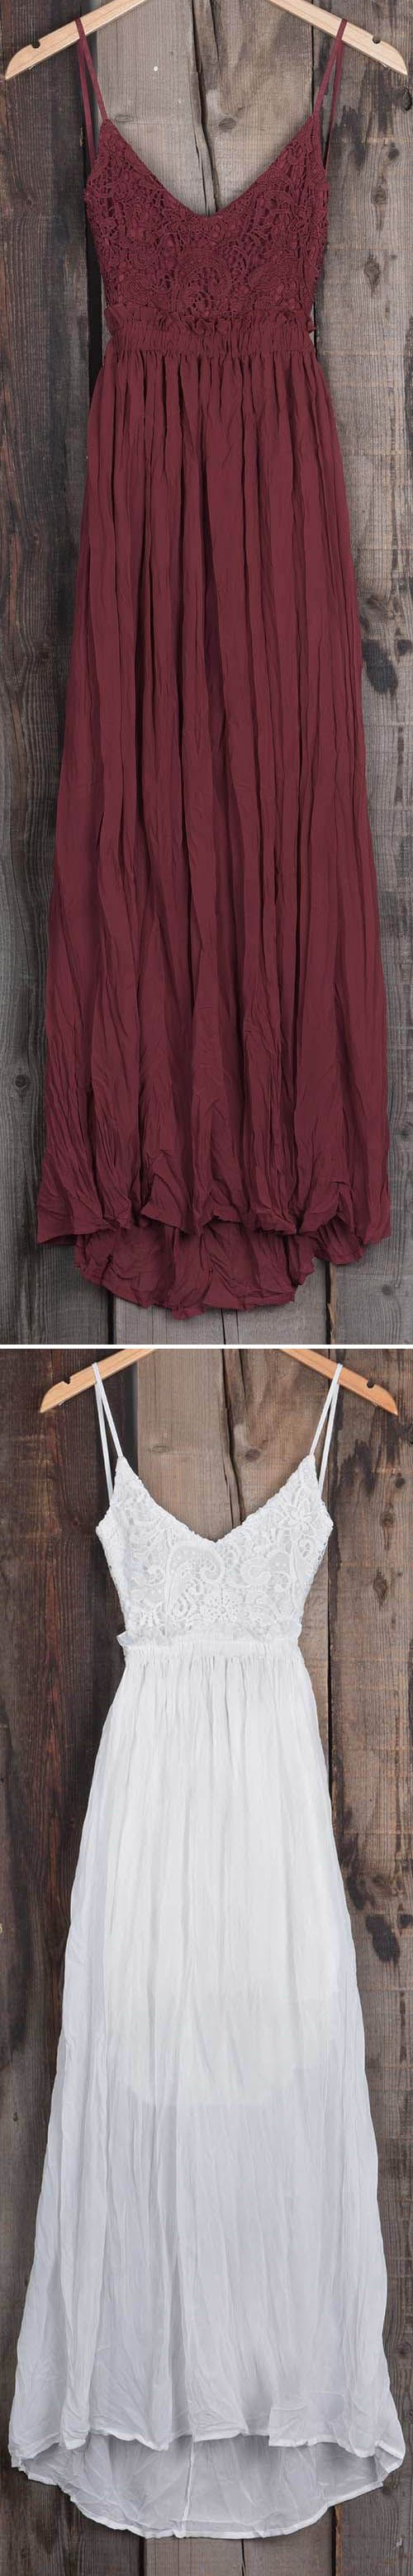 best fashion images on pinterest bikinis shower outfits and